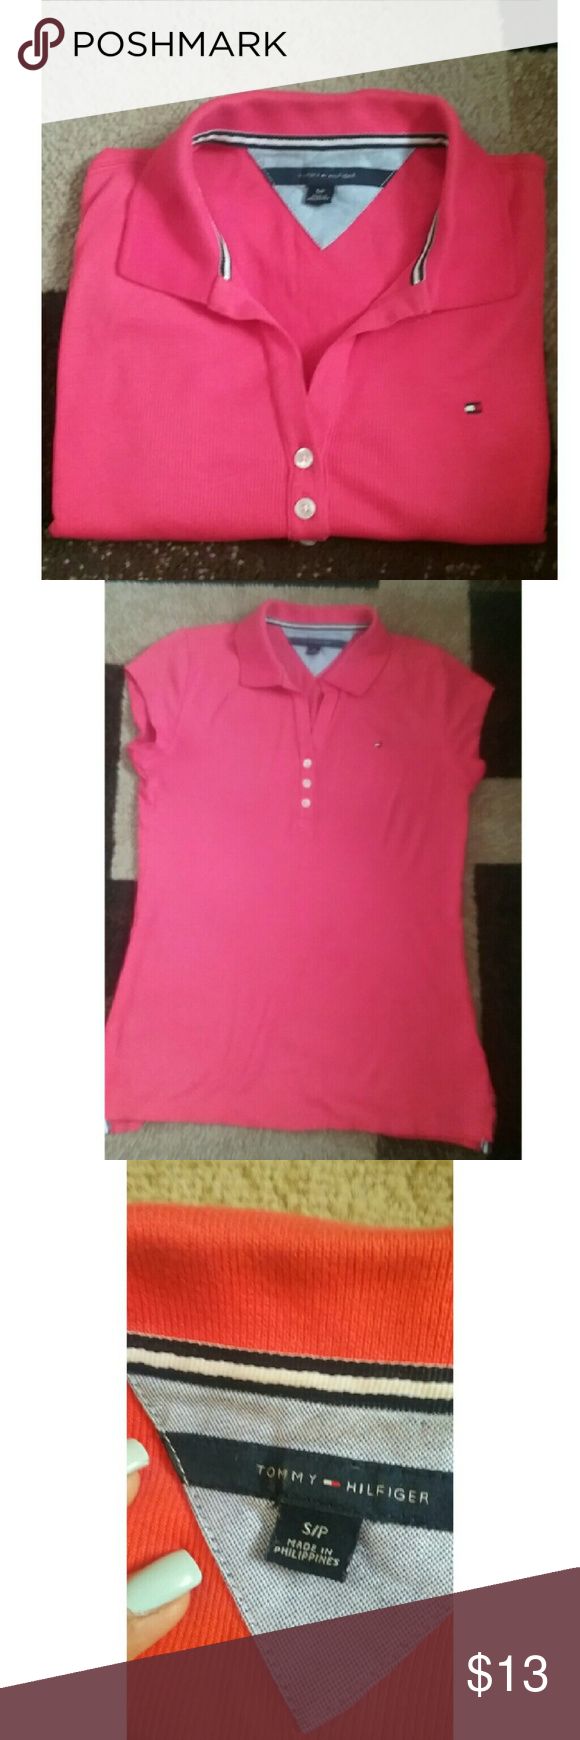 Tommy Hilfiger shirt New Women's shirt. Its slim. Tommy Hilfiger Tops Tees - Short Sleeve